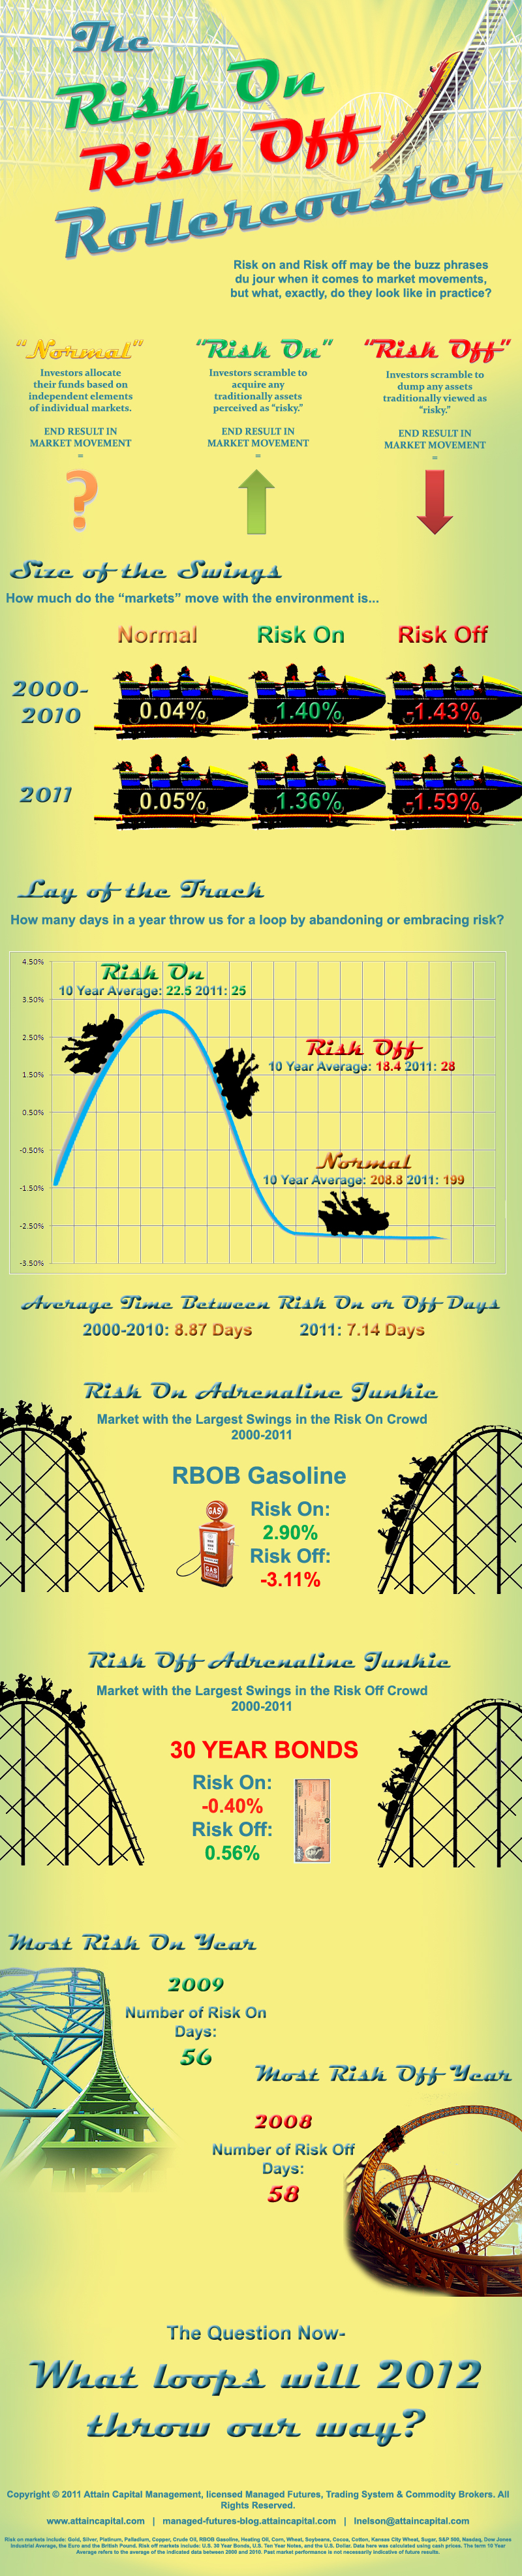 Risk on and Risk Off Markets